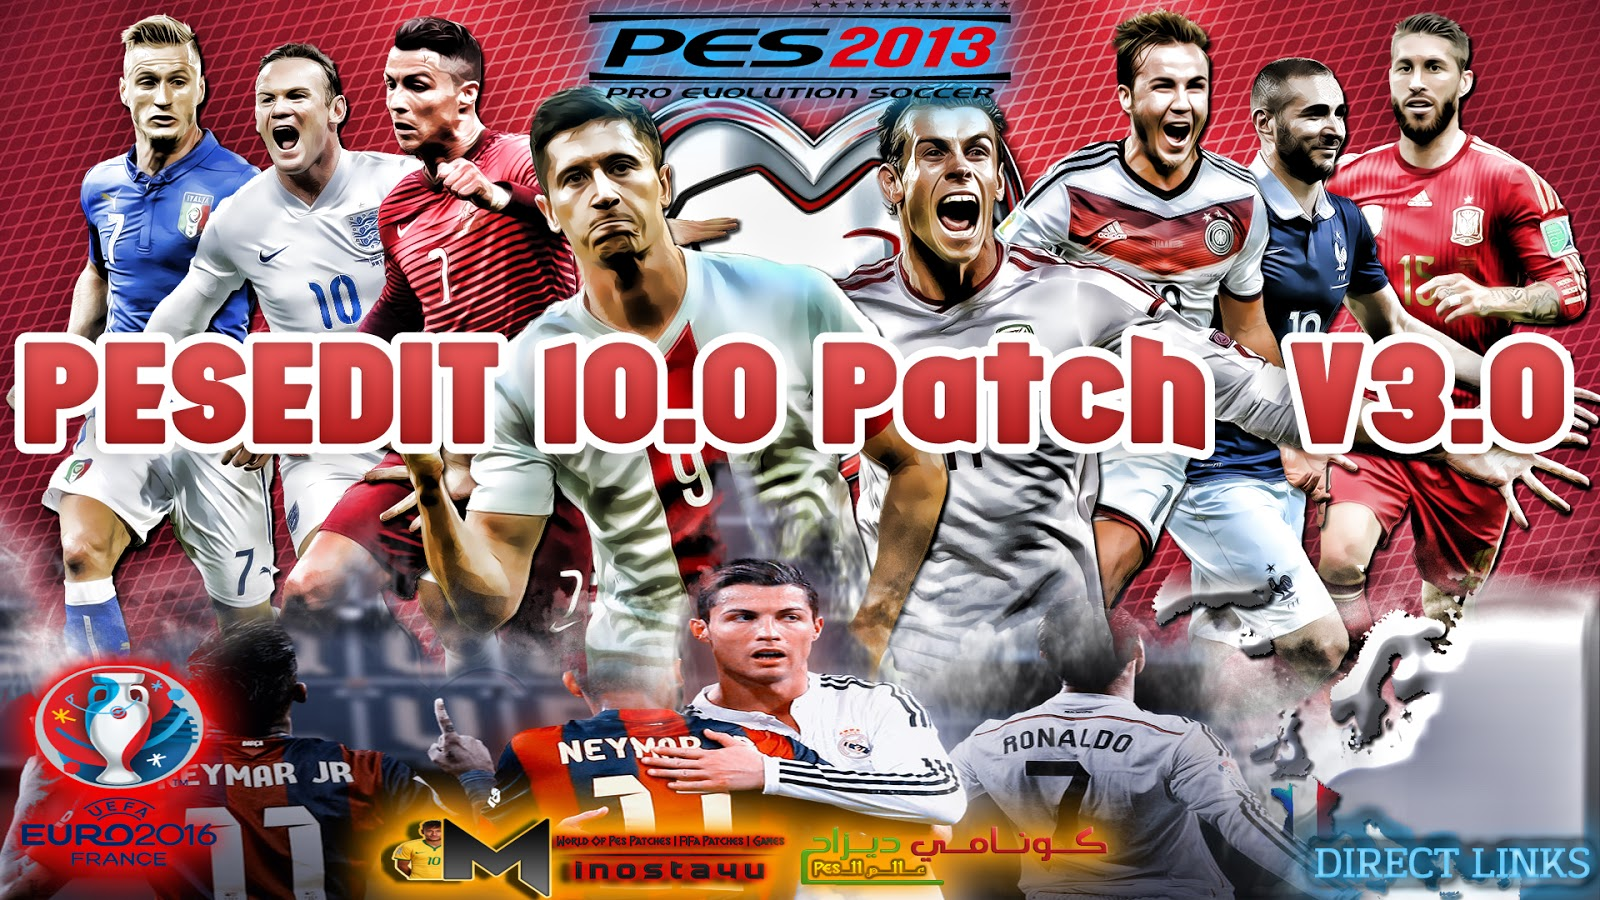 Pespatchscom Pes Patch Edit Pesedit 2011 4 0 Fix 1 Police 14796jsu 02 Hitam Jarum Orange Read More A Blog About Pro Evolution Soccer Mods Patches Official Updates 2018 Konami